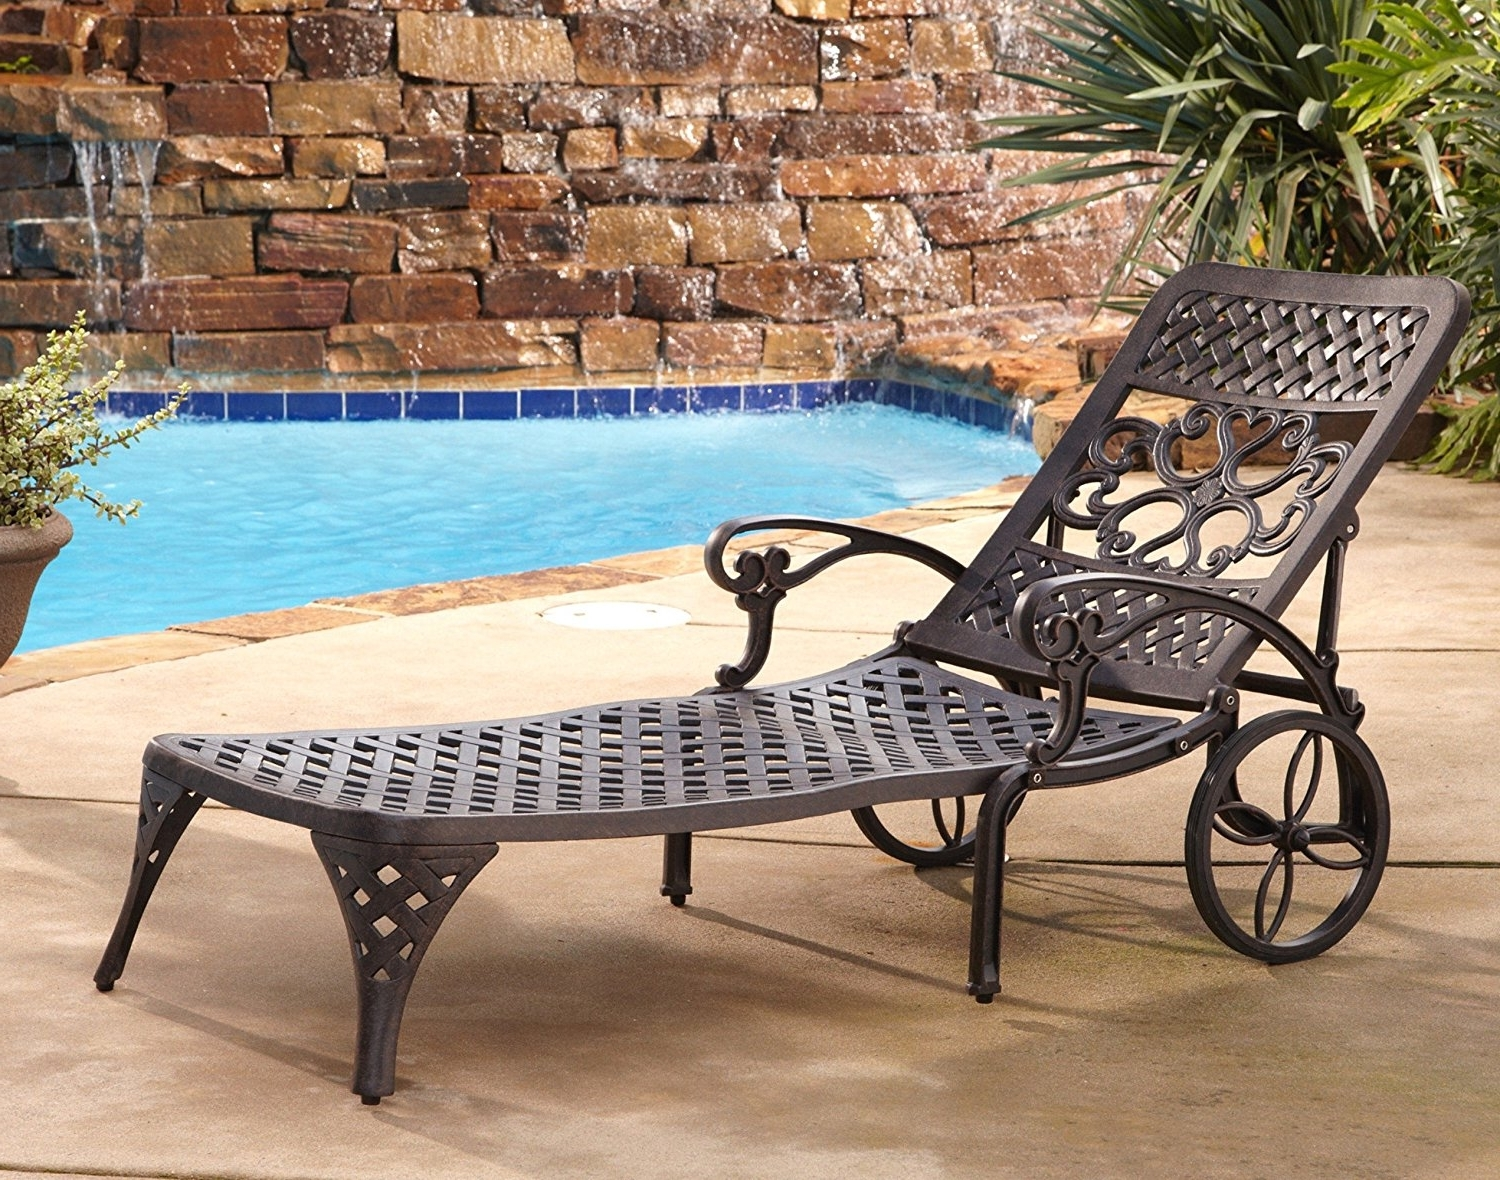 Most Popular Chaise Lounge Chairs At Sears Intended For Amazon : Home Styles Biscayne Chaise Lounge Chair, Bronze (View 12 of 15)